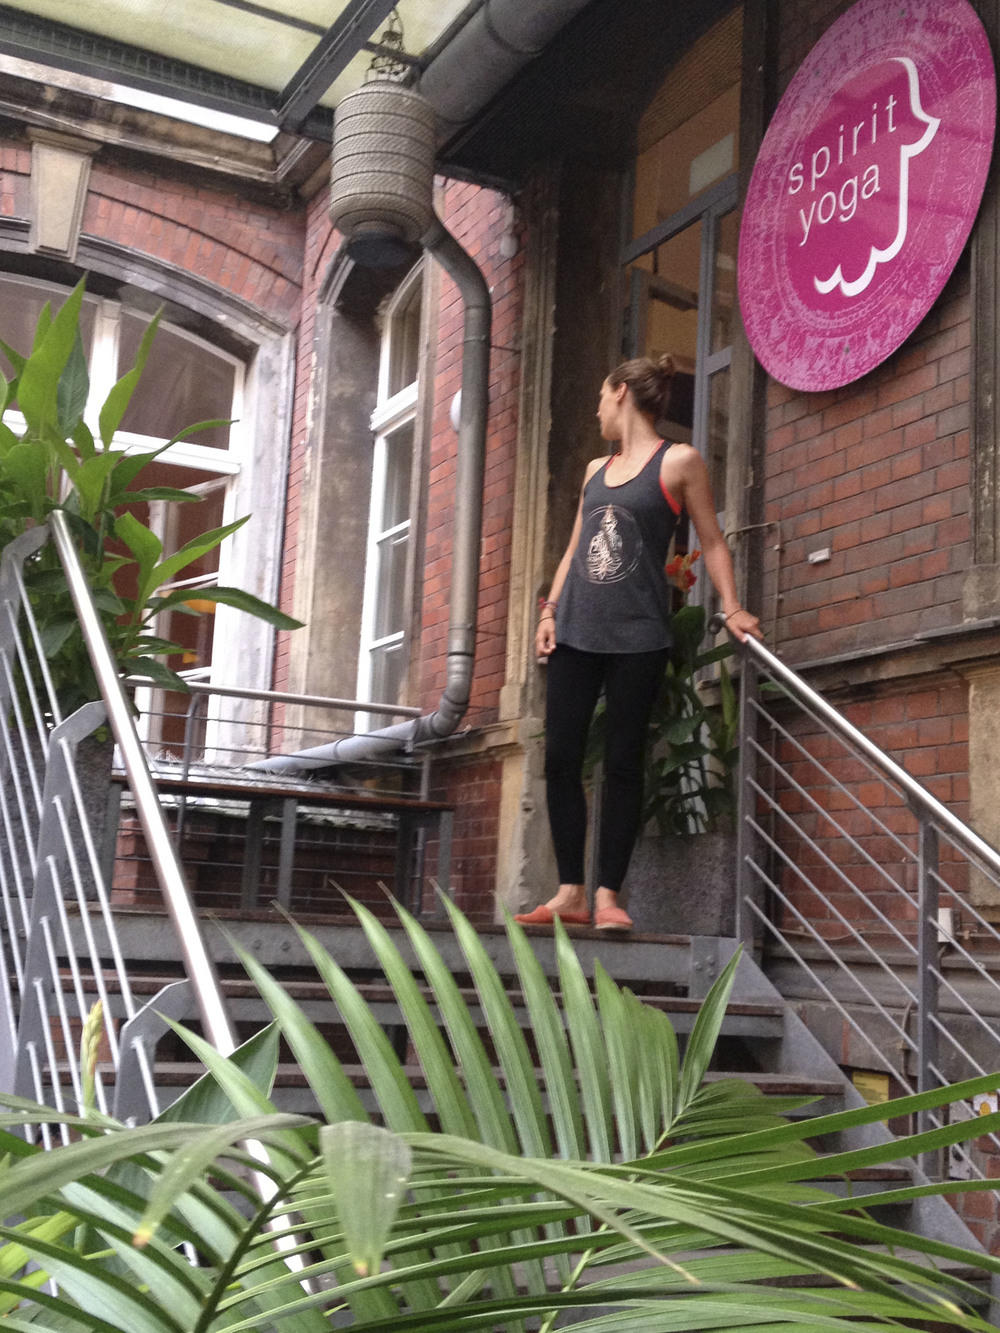 spirit yoga west yogastudio berlin west1950.jpg